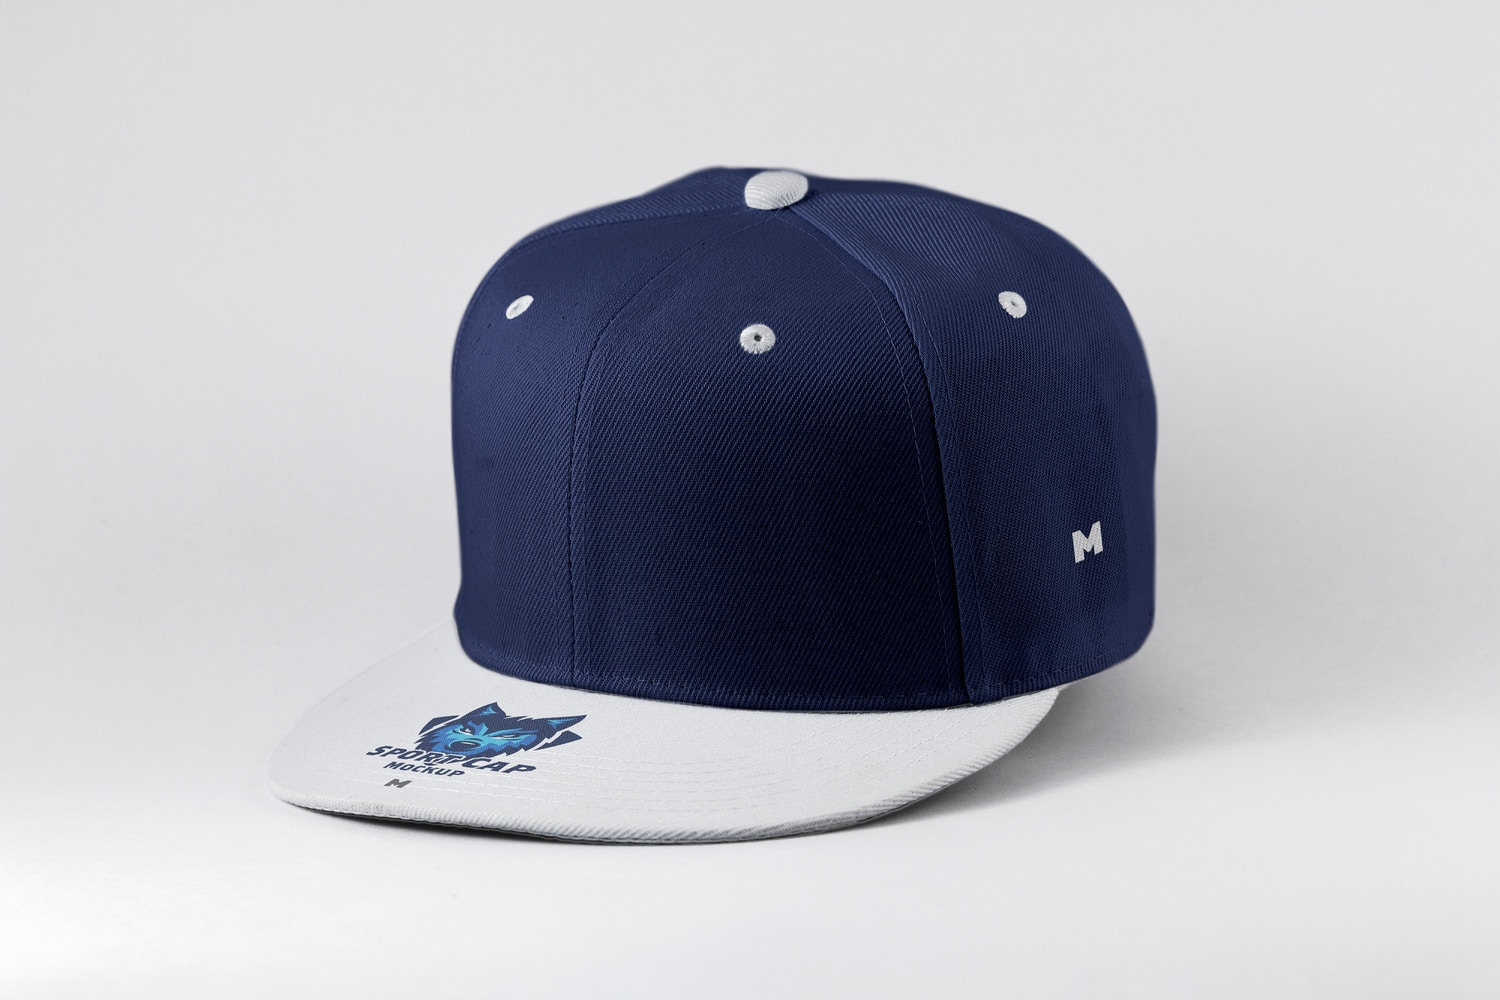 Sports Cap Semi Front View Mockup 01